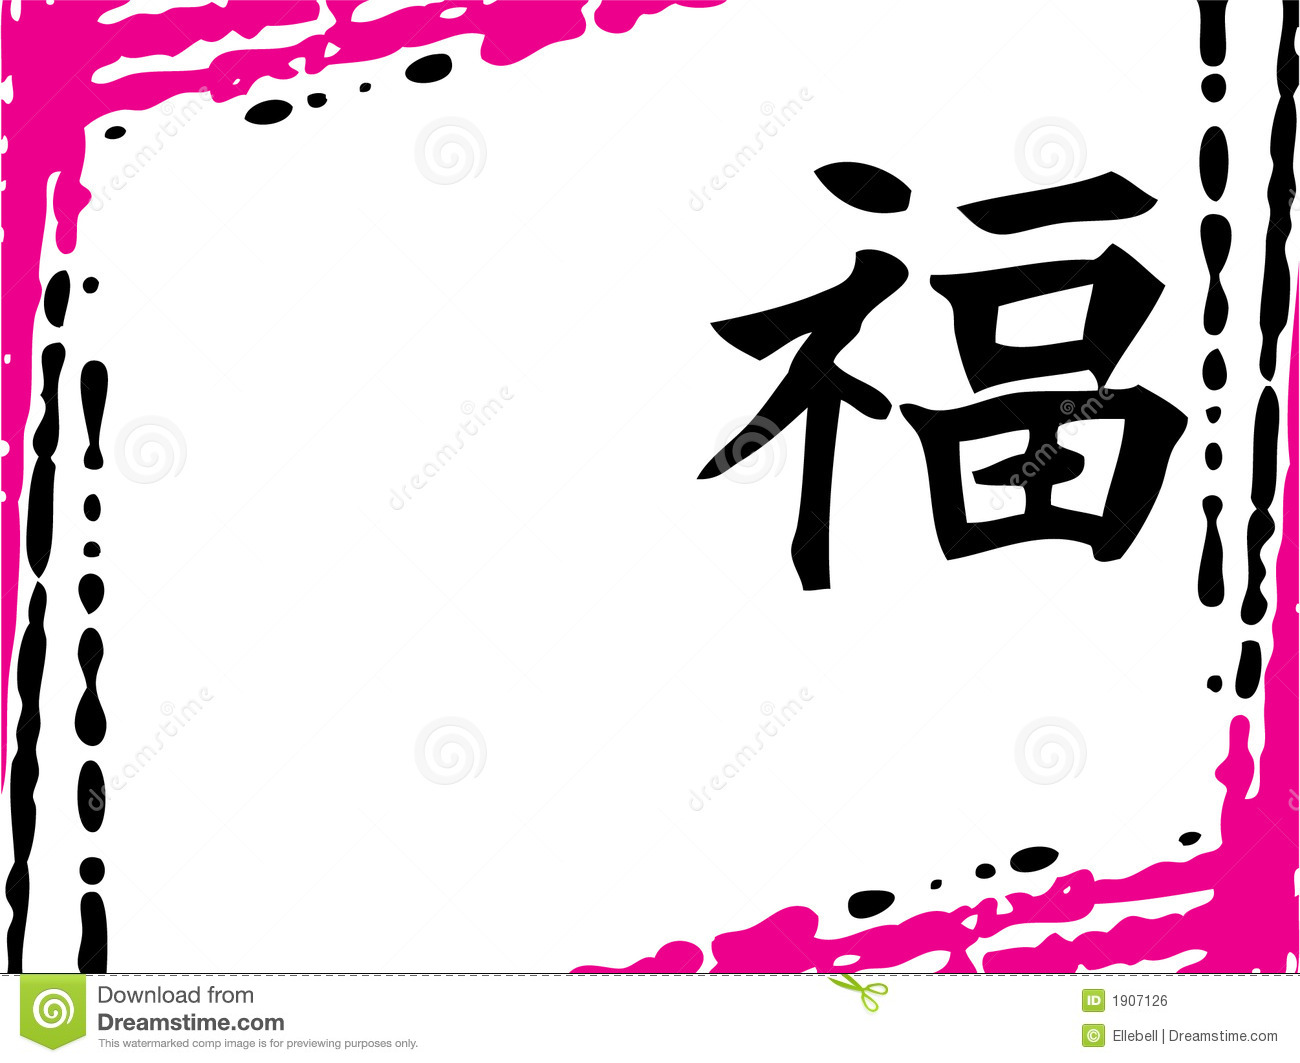 Royalty Free Stock Image Bright Kanji Background Image1907126 on Black And White Border Designs